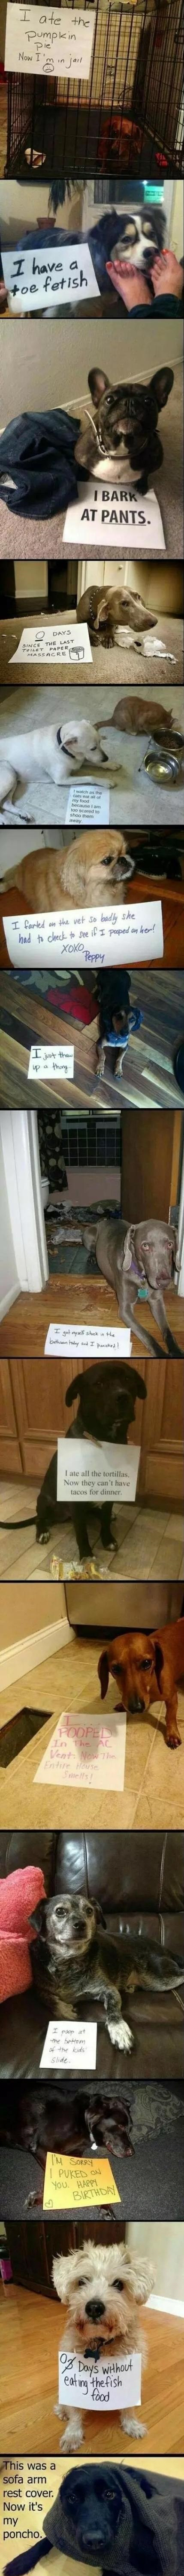 dogs-shaming-compilation